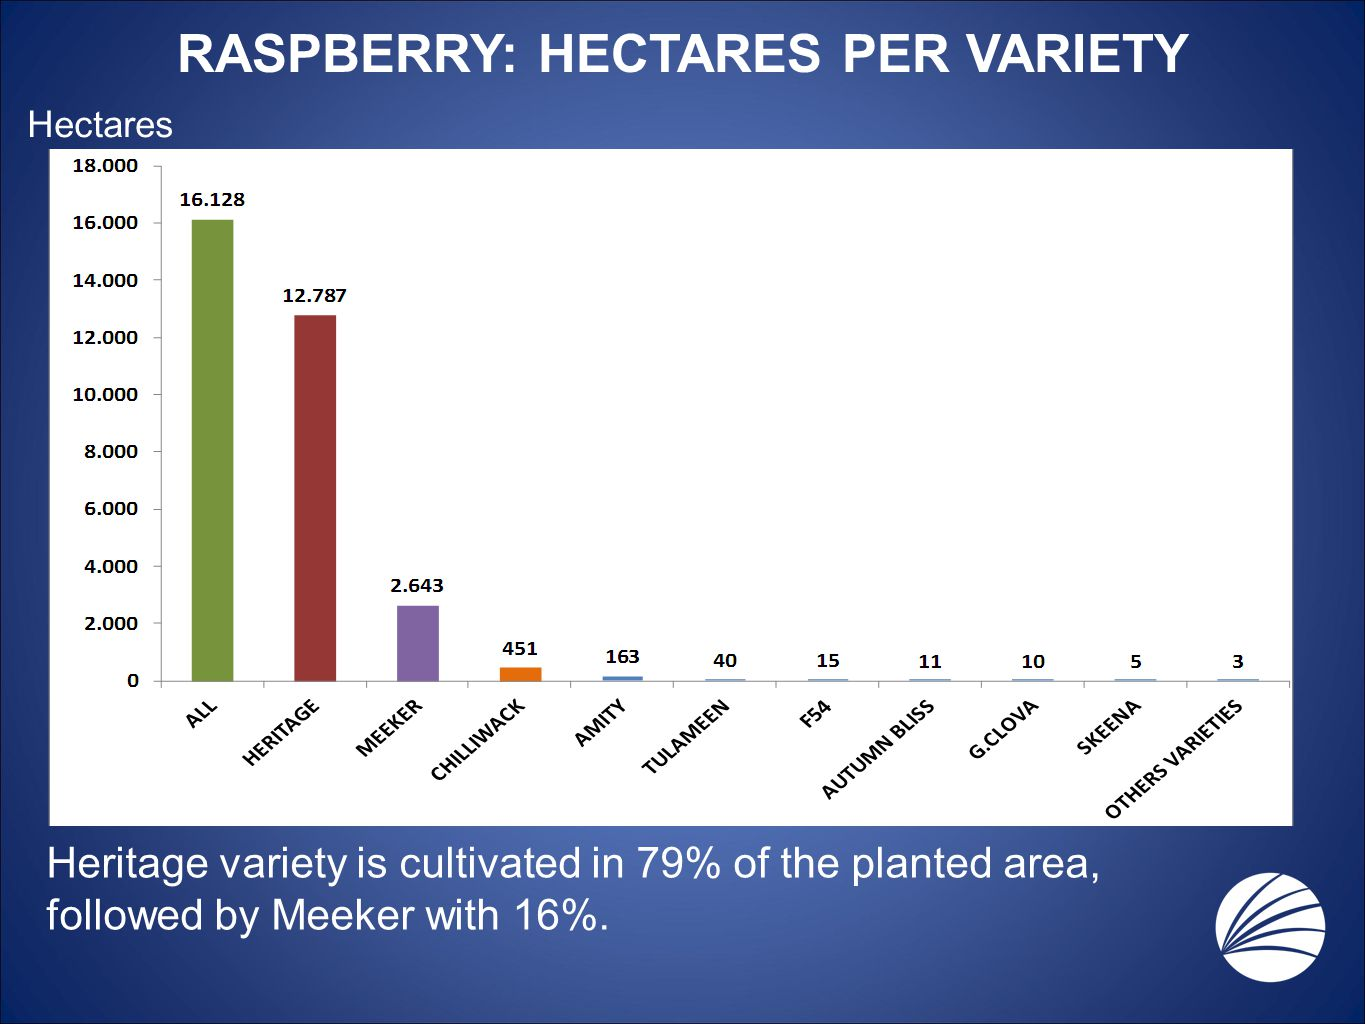 RASPBERRY: HECTARES PER VARIETY